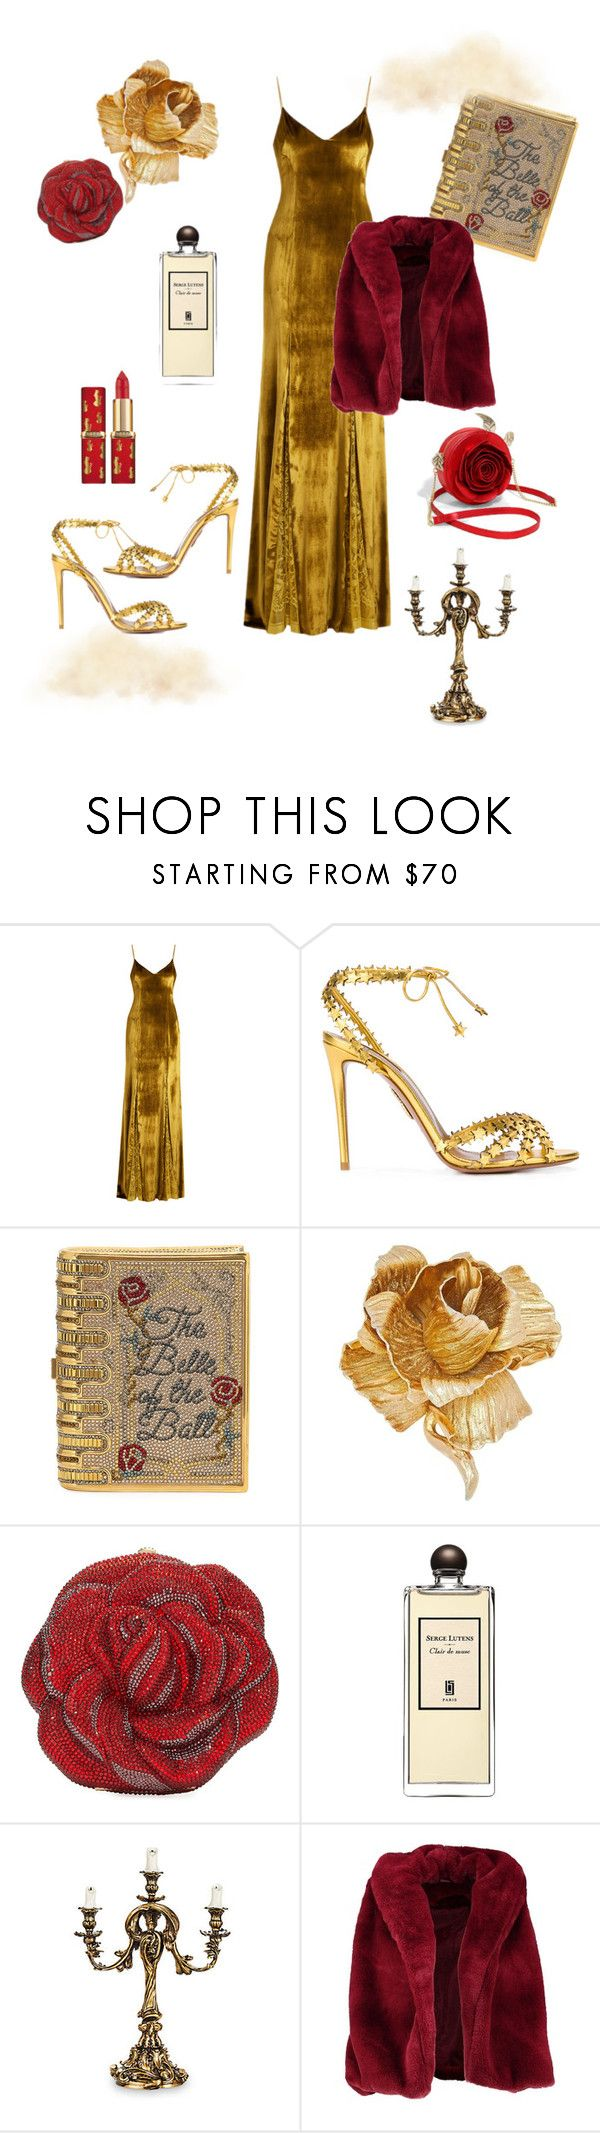 """""""the modern beauty and the beast"""" by margoucha ❤ liked on Polyvore featuring Galvan, Aquazzura, Judith Leiber, Christian Dior, Serge Lutens, Lumière, Boohoo and modern"""